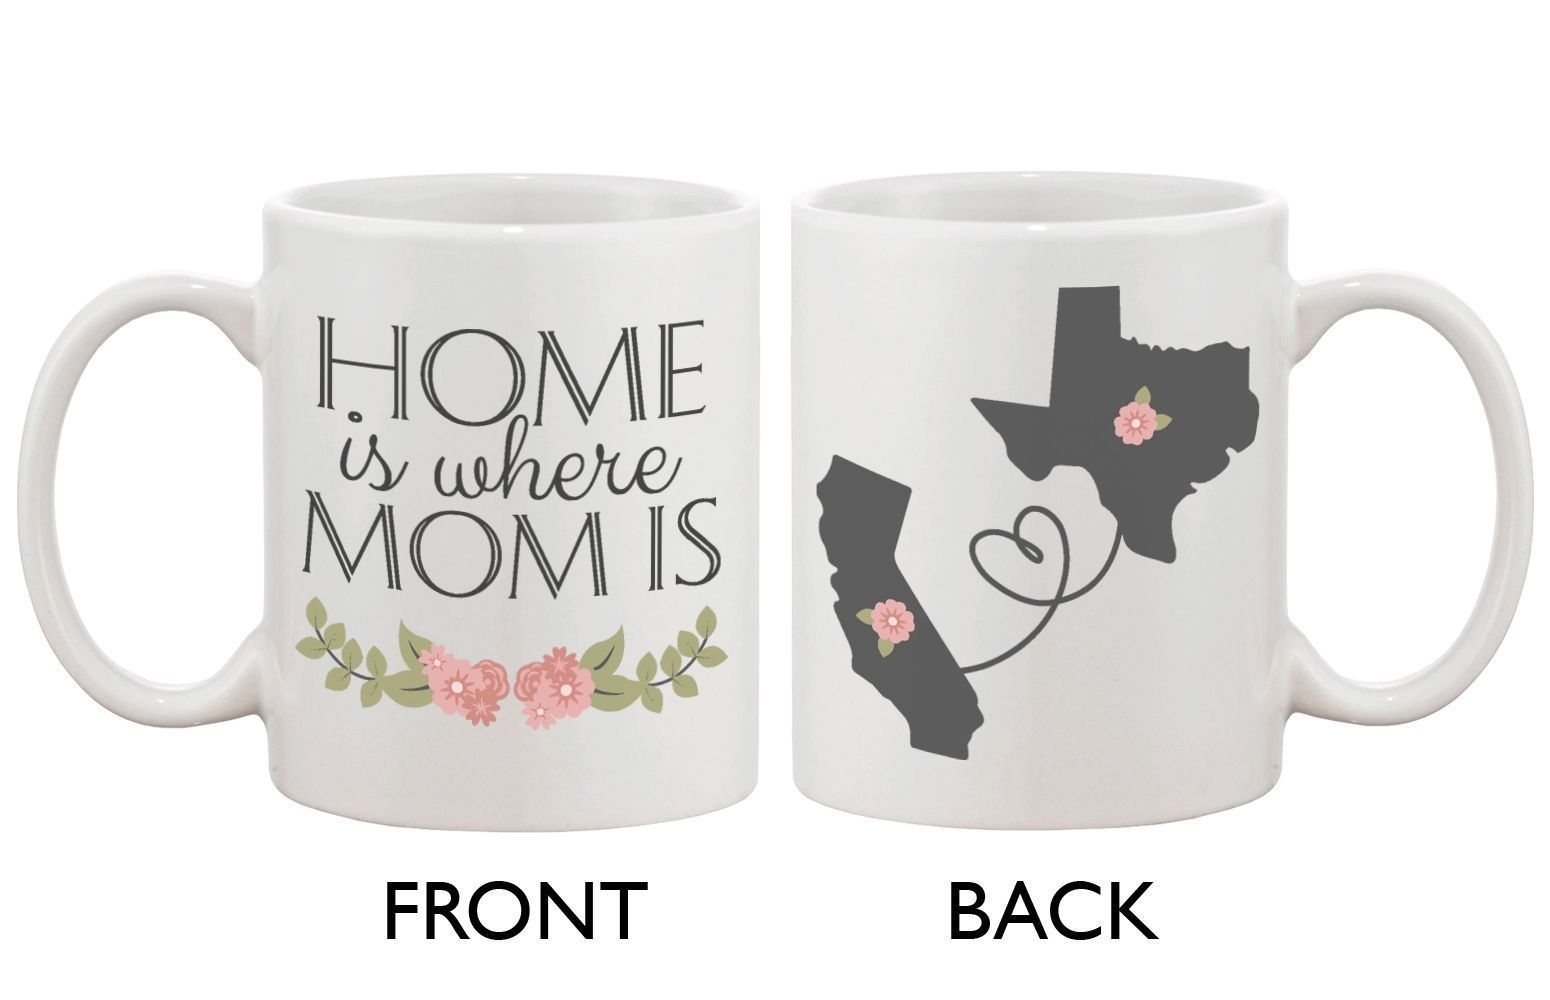 Details about personalized long distance relationship mugs